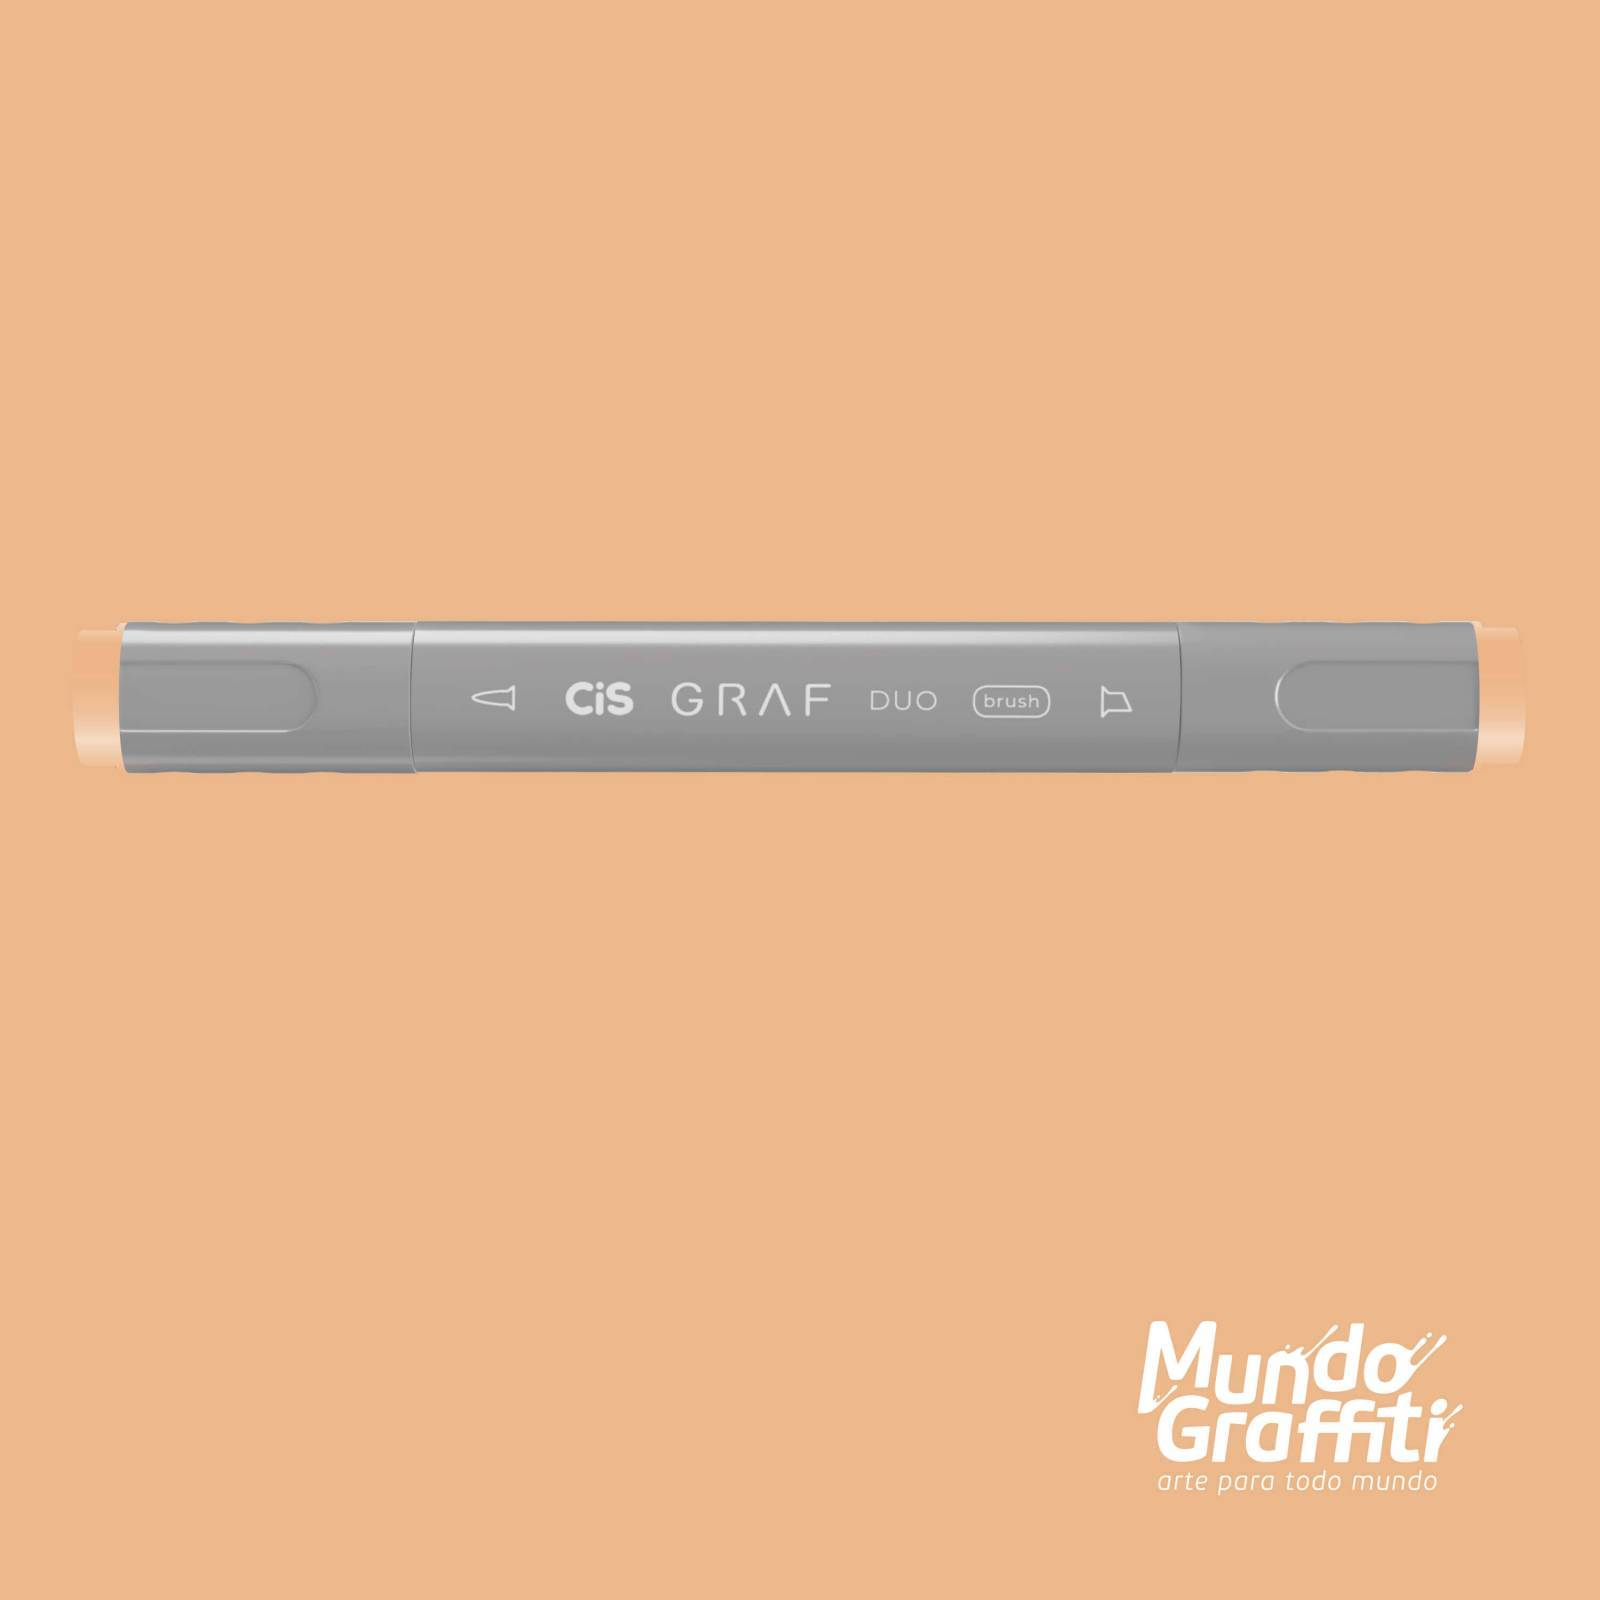 Marcador Cis Graf Duo Brush Bareley Beige 29 - Mundo Graffiti